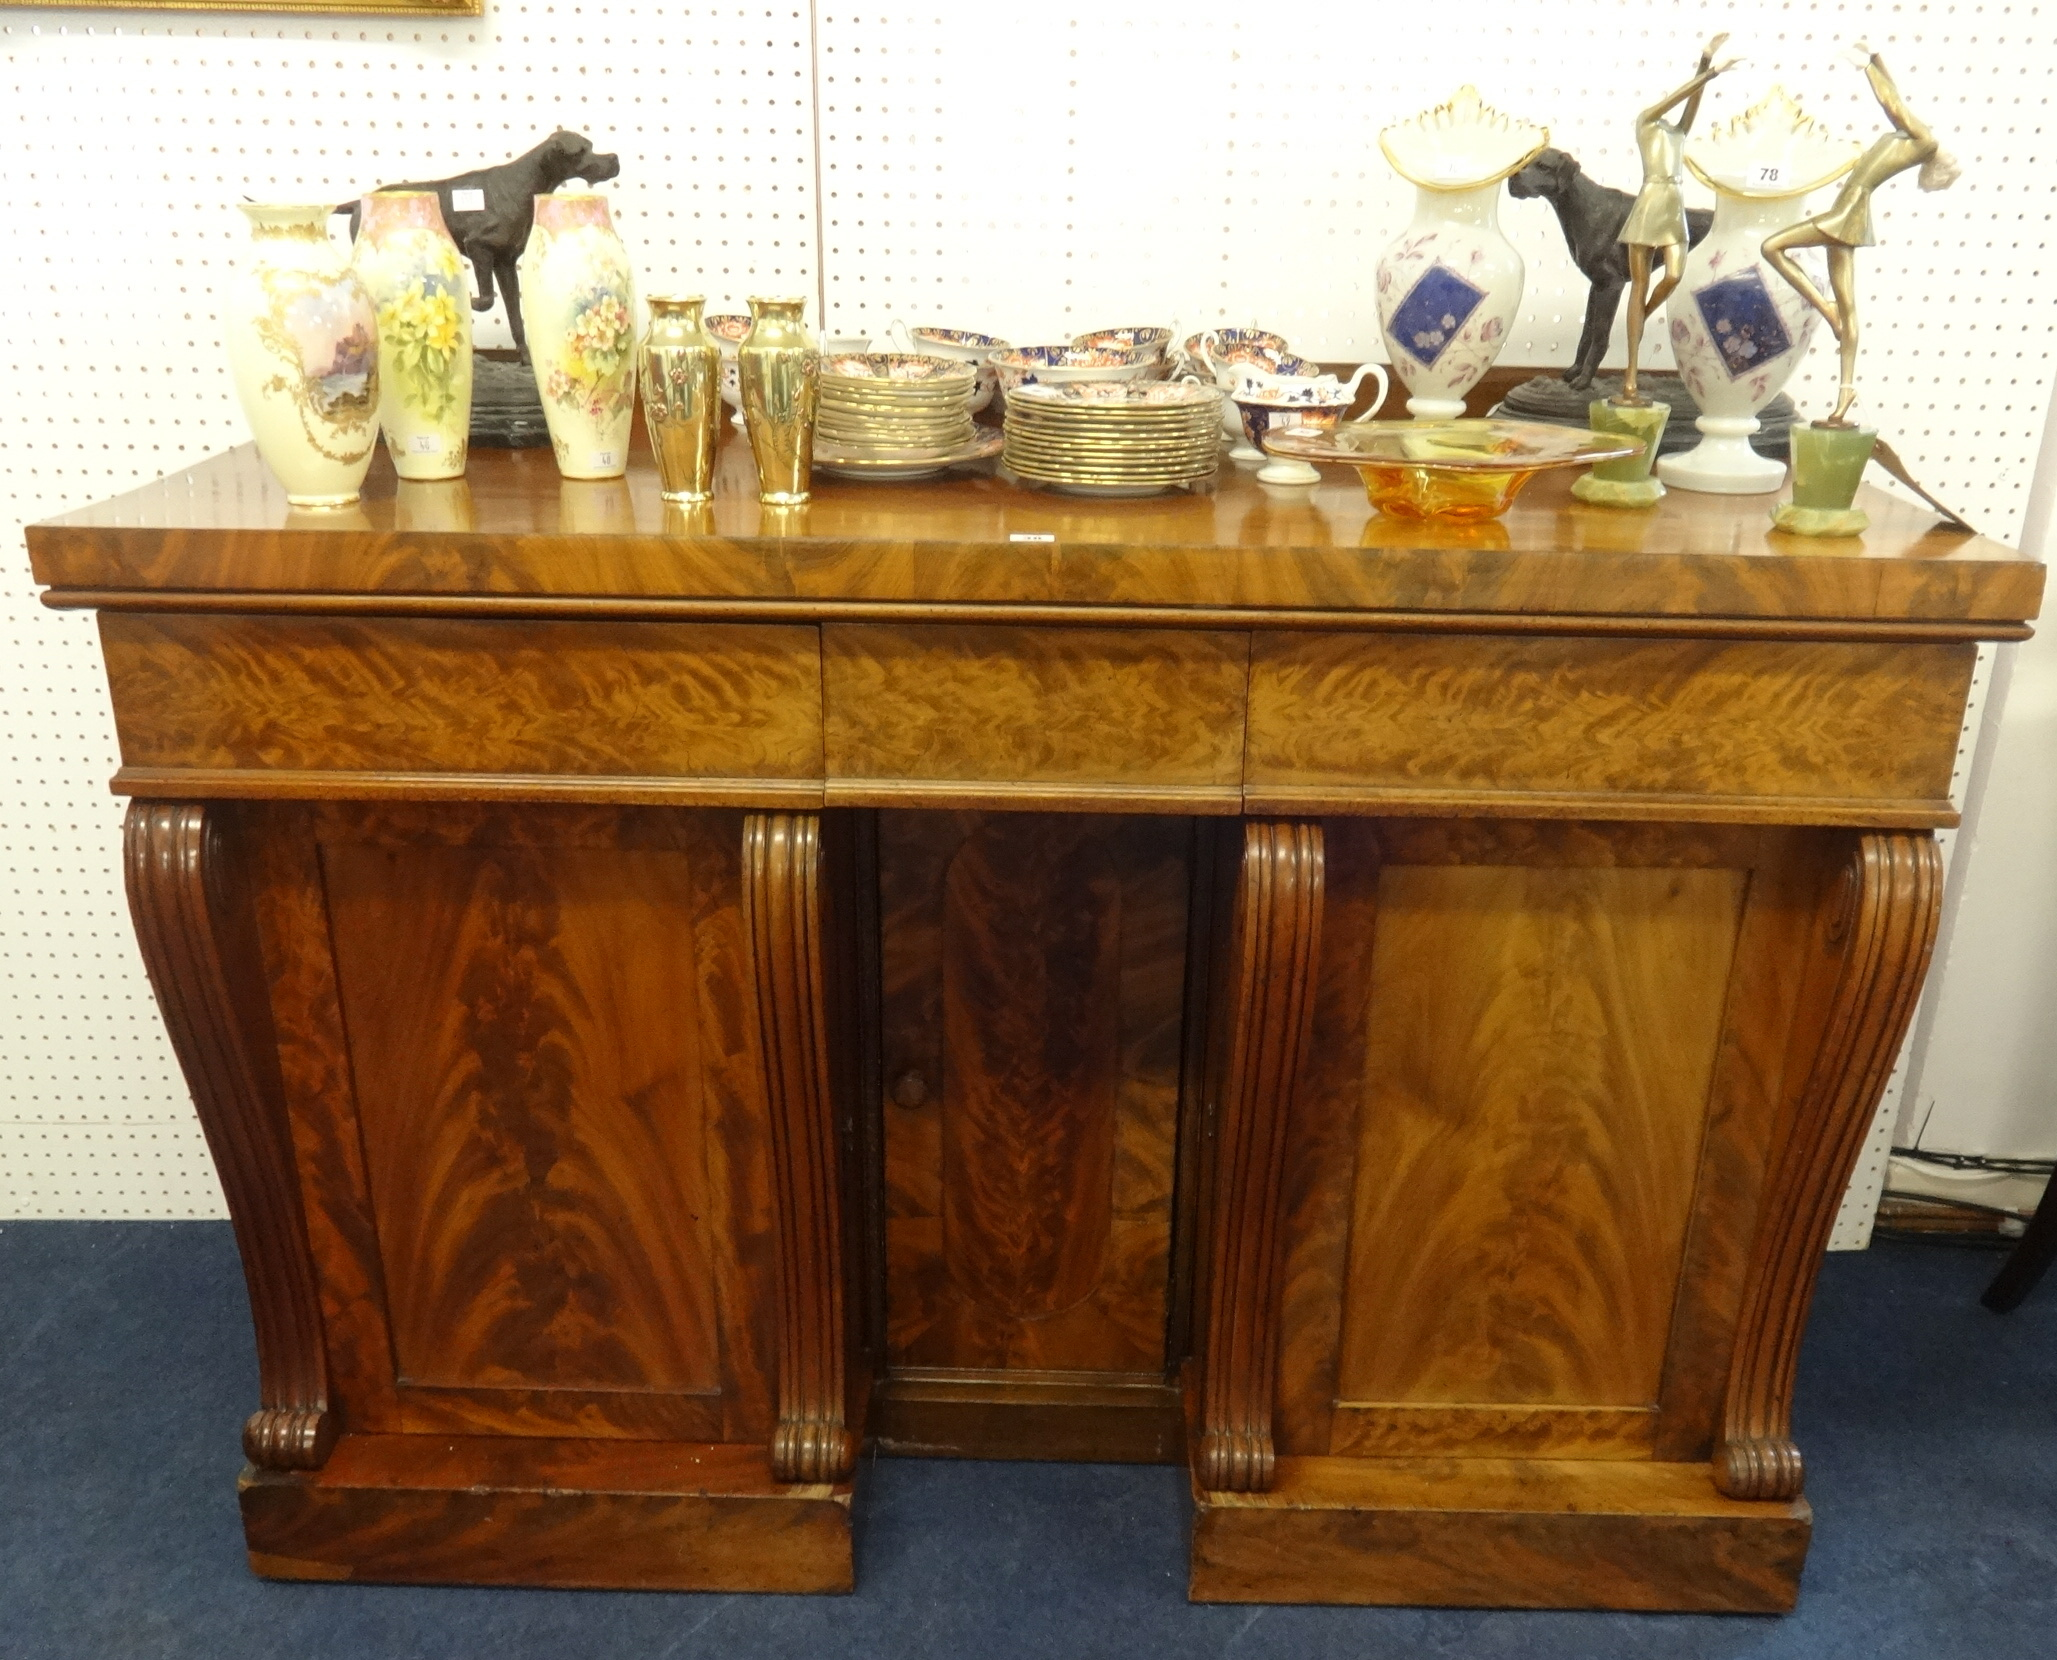 Lot 038 - A Victorian mahogany sideboard with frieze drawers, cupboards and serpentine supports, width